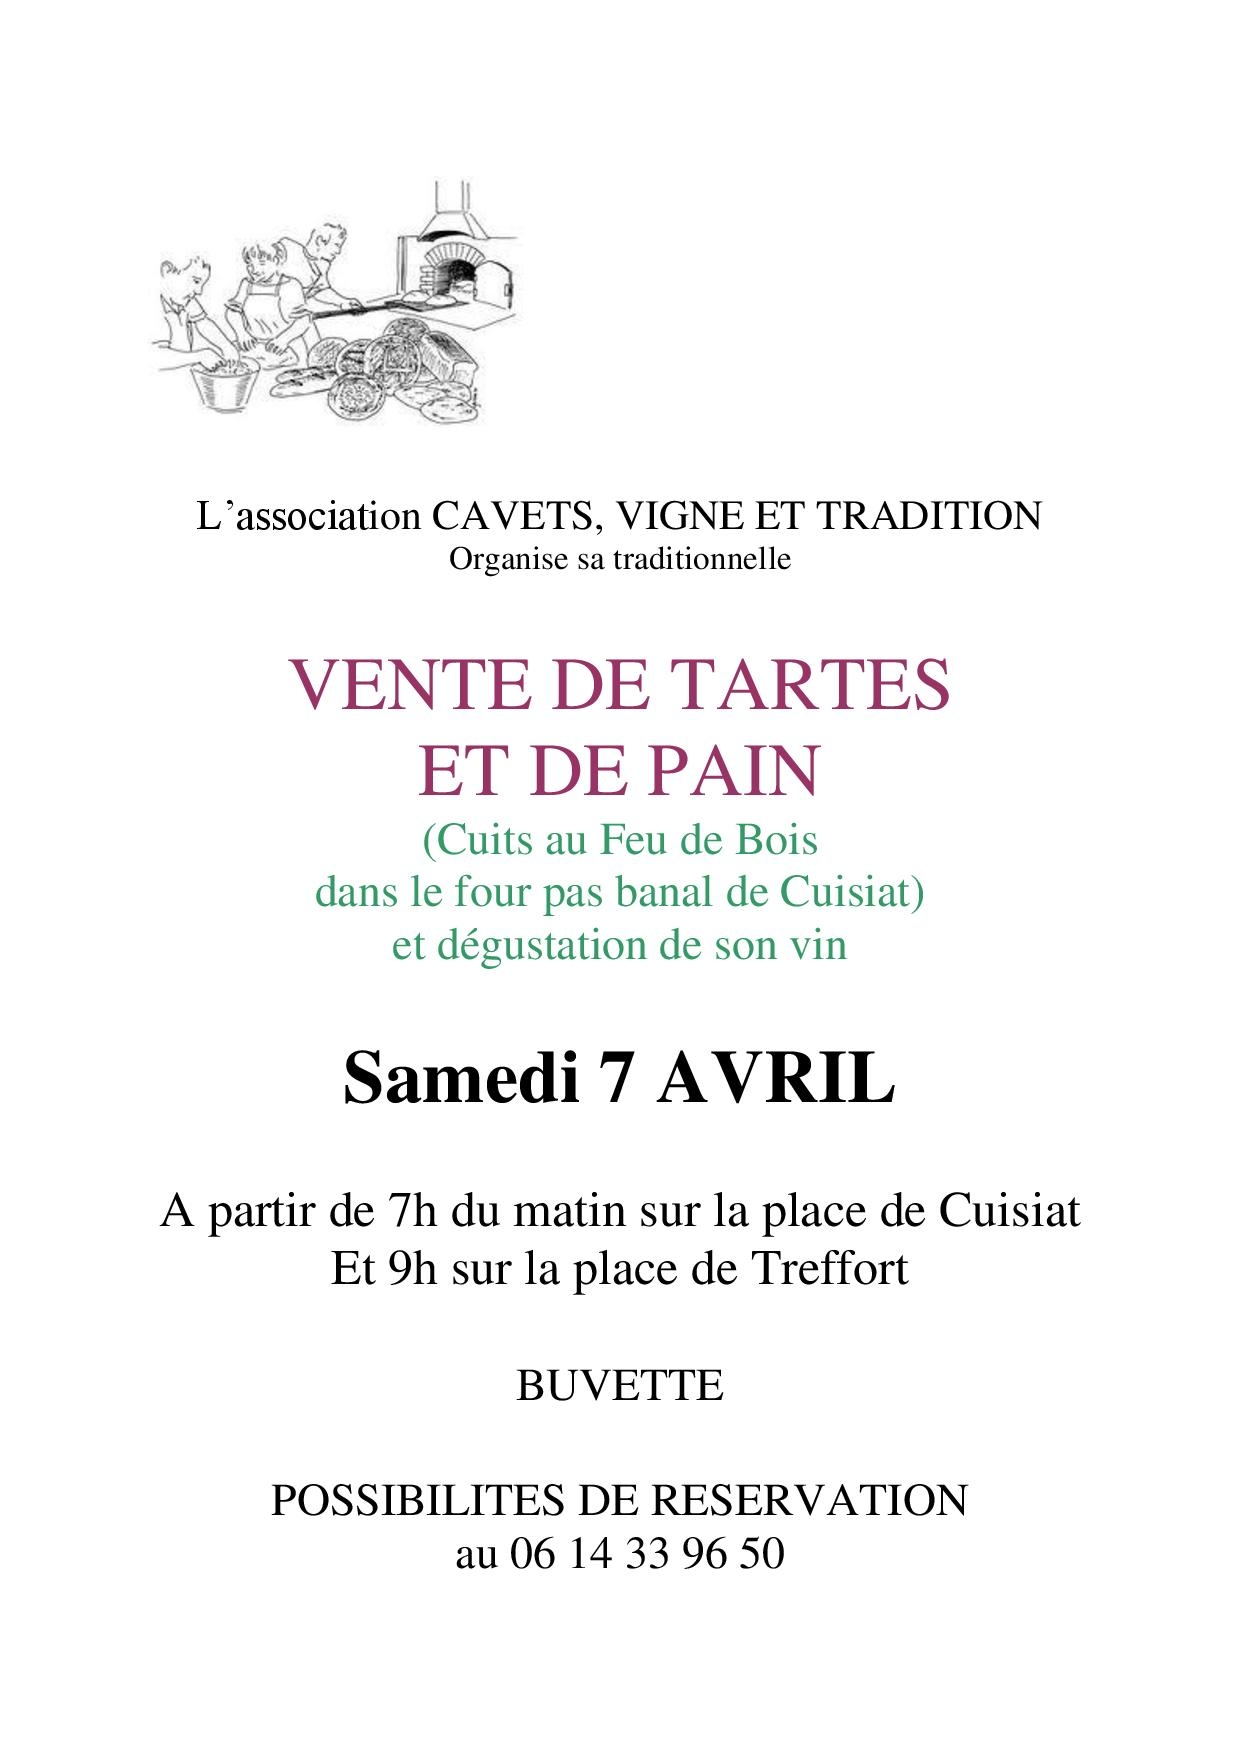 affiche cavets avril 2018